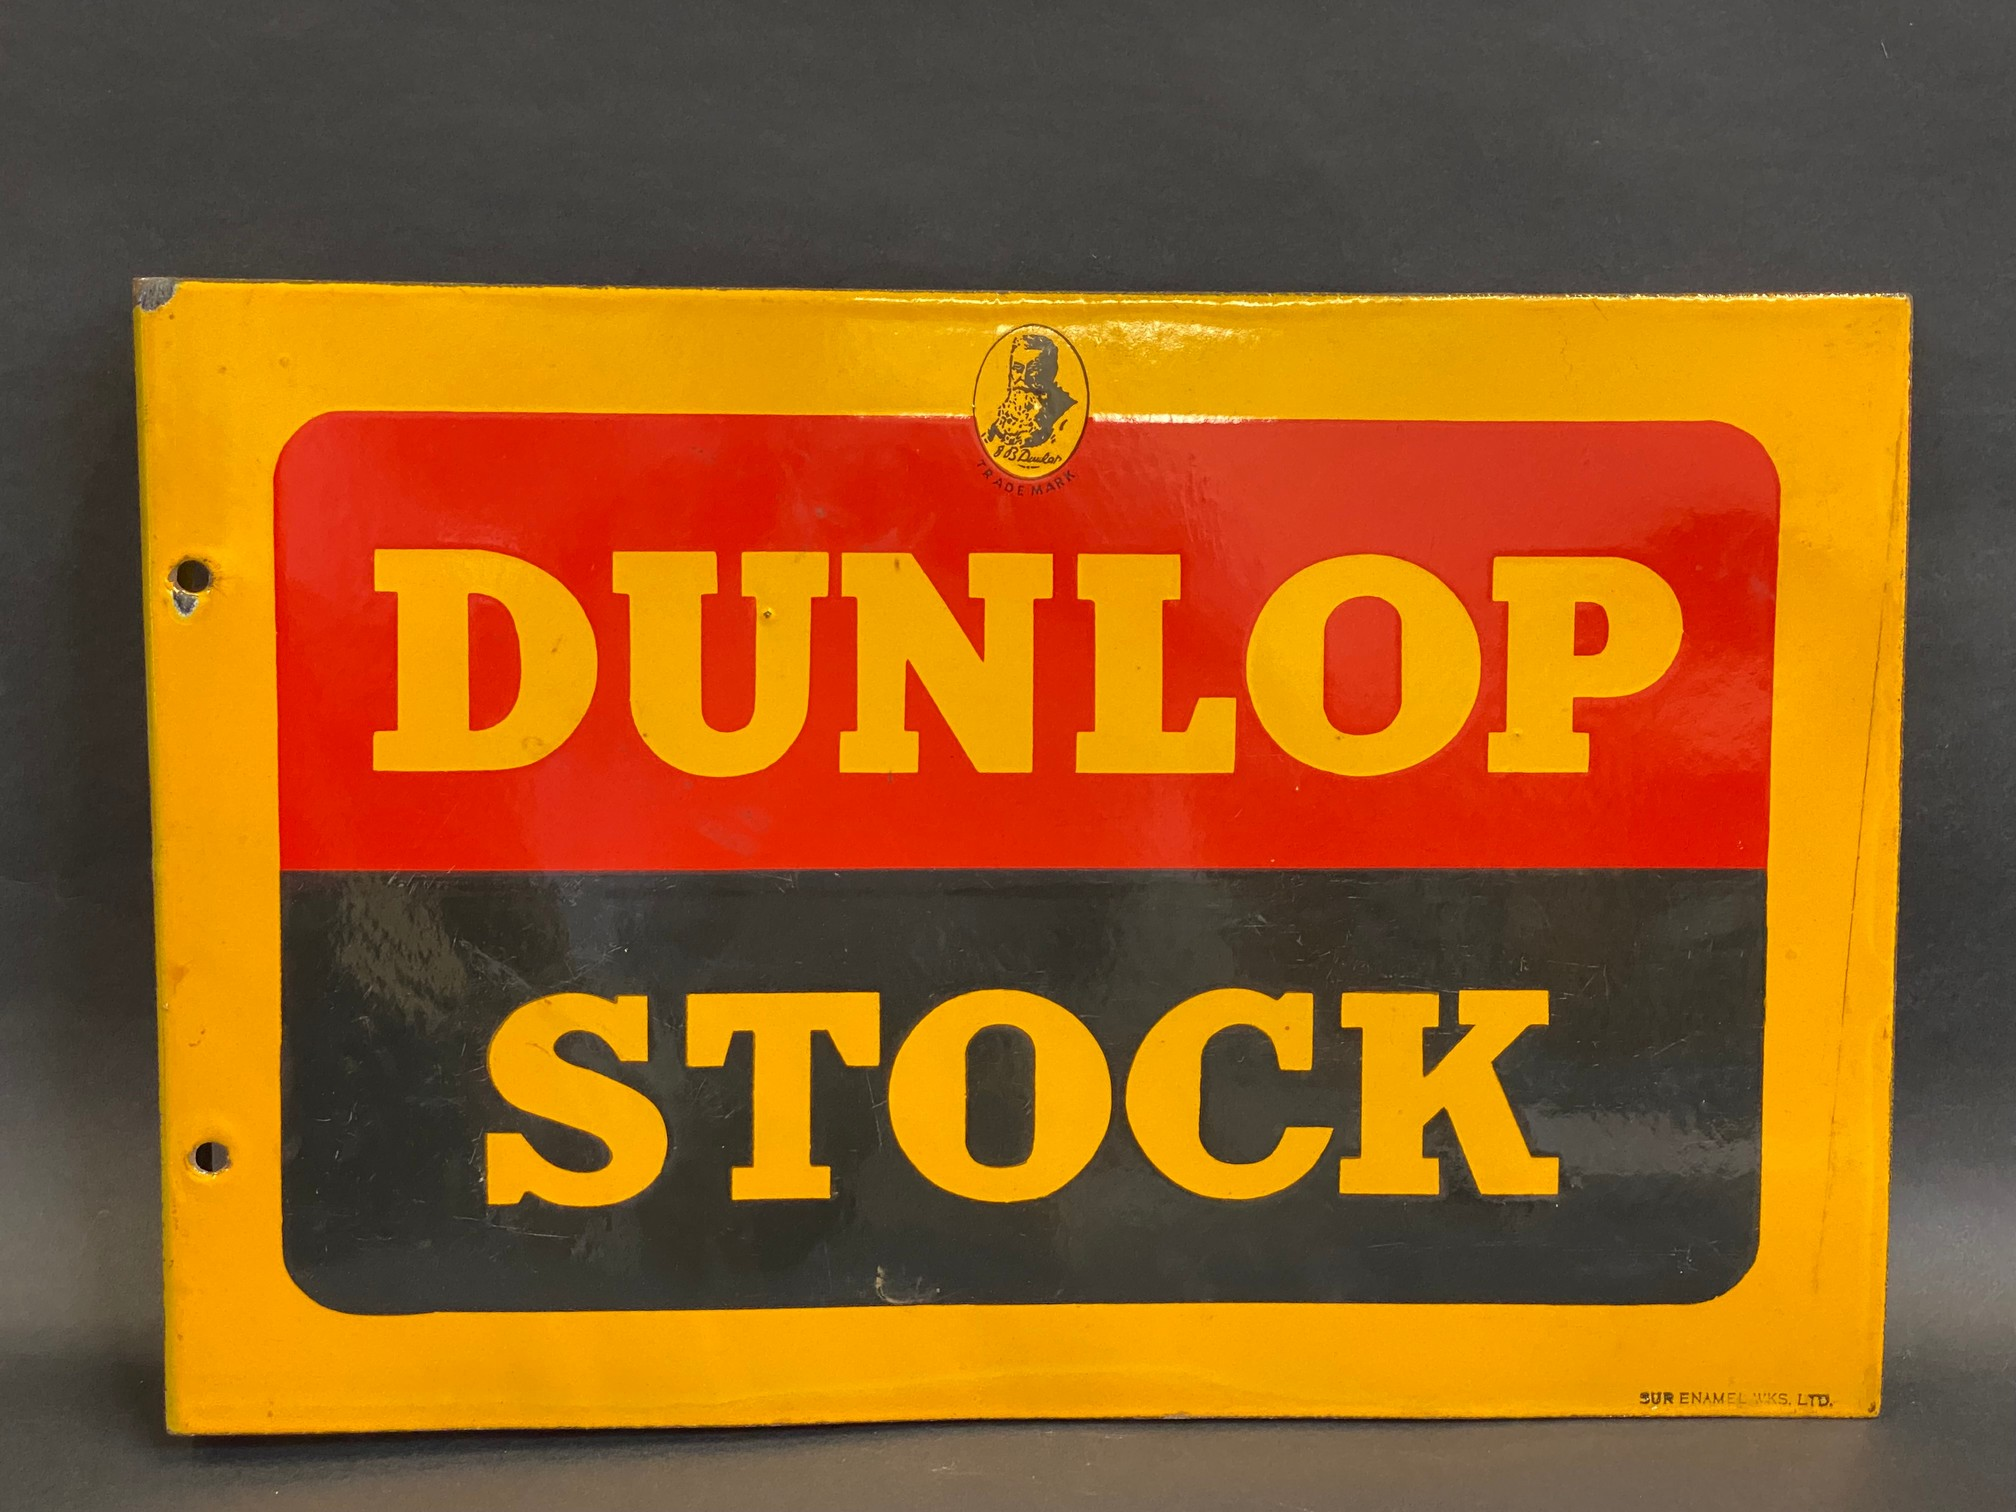 A Dunlop Stock double sided enamel sign with hanging flange, in near mint condition, made by Sur